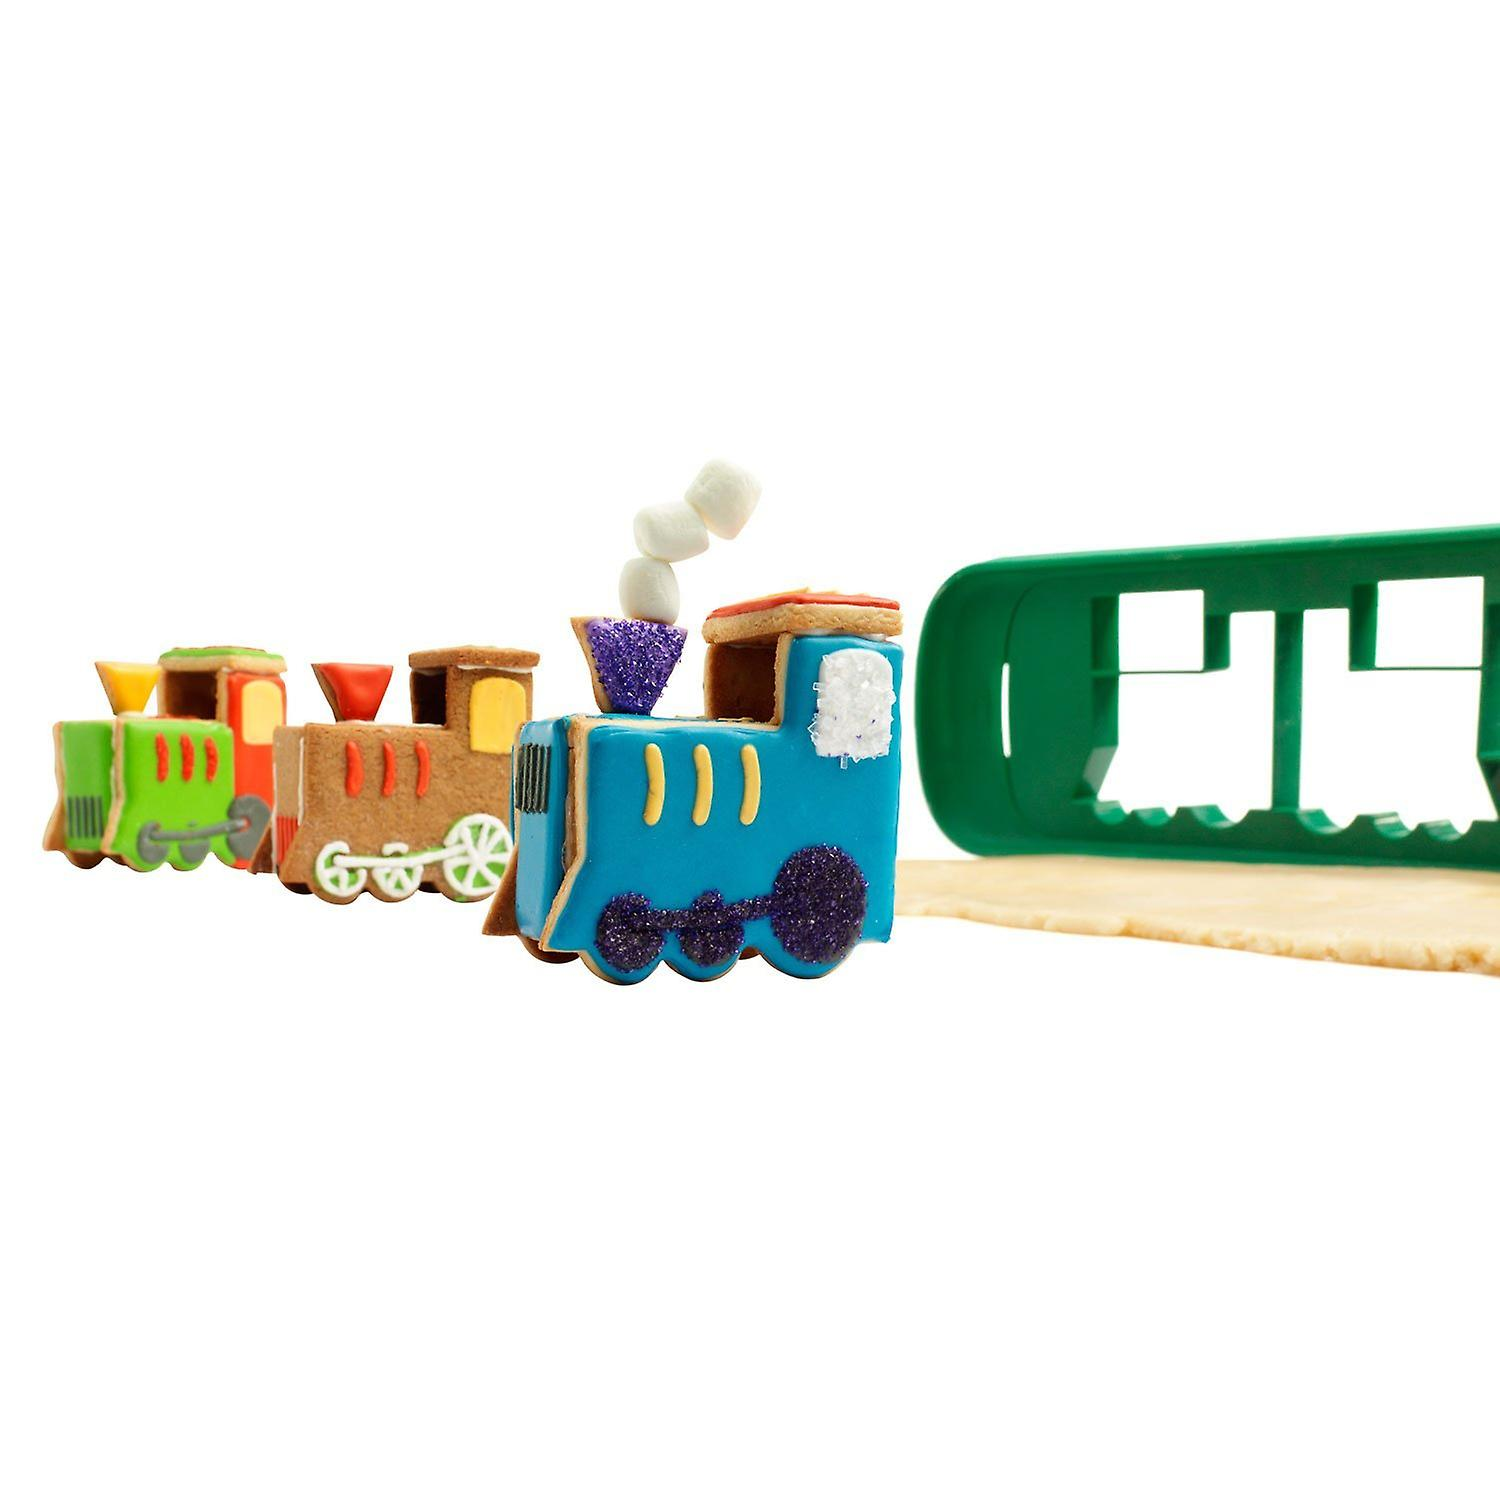 Chef'n Cookease 3D Cookie Cutter and Stencil, Train